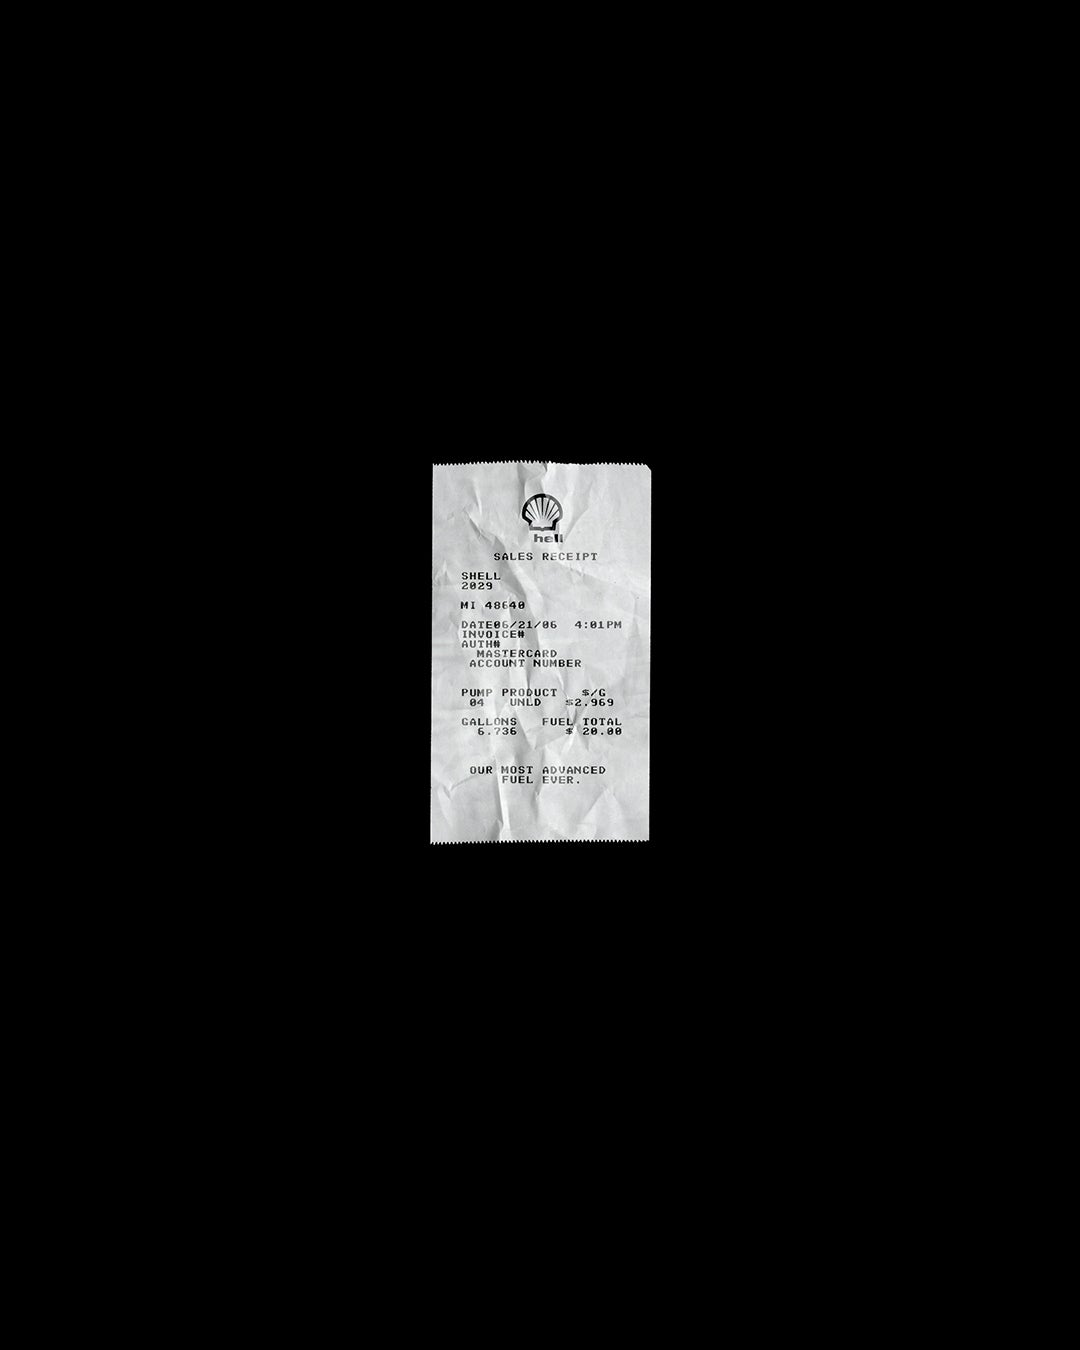 Image of GAS STATION RECEIPT